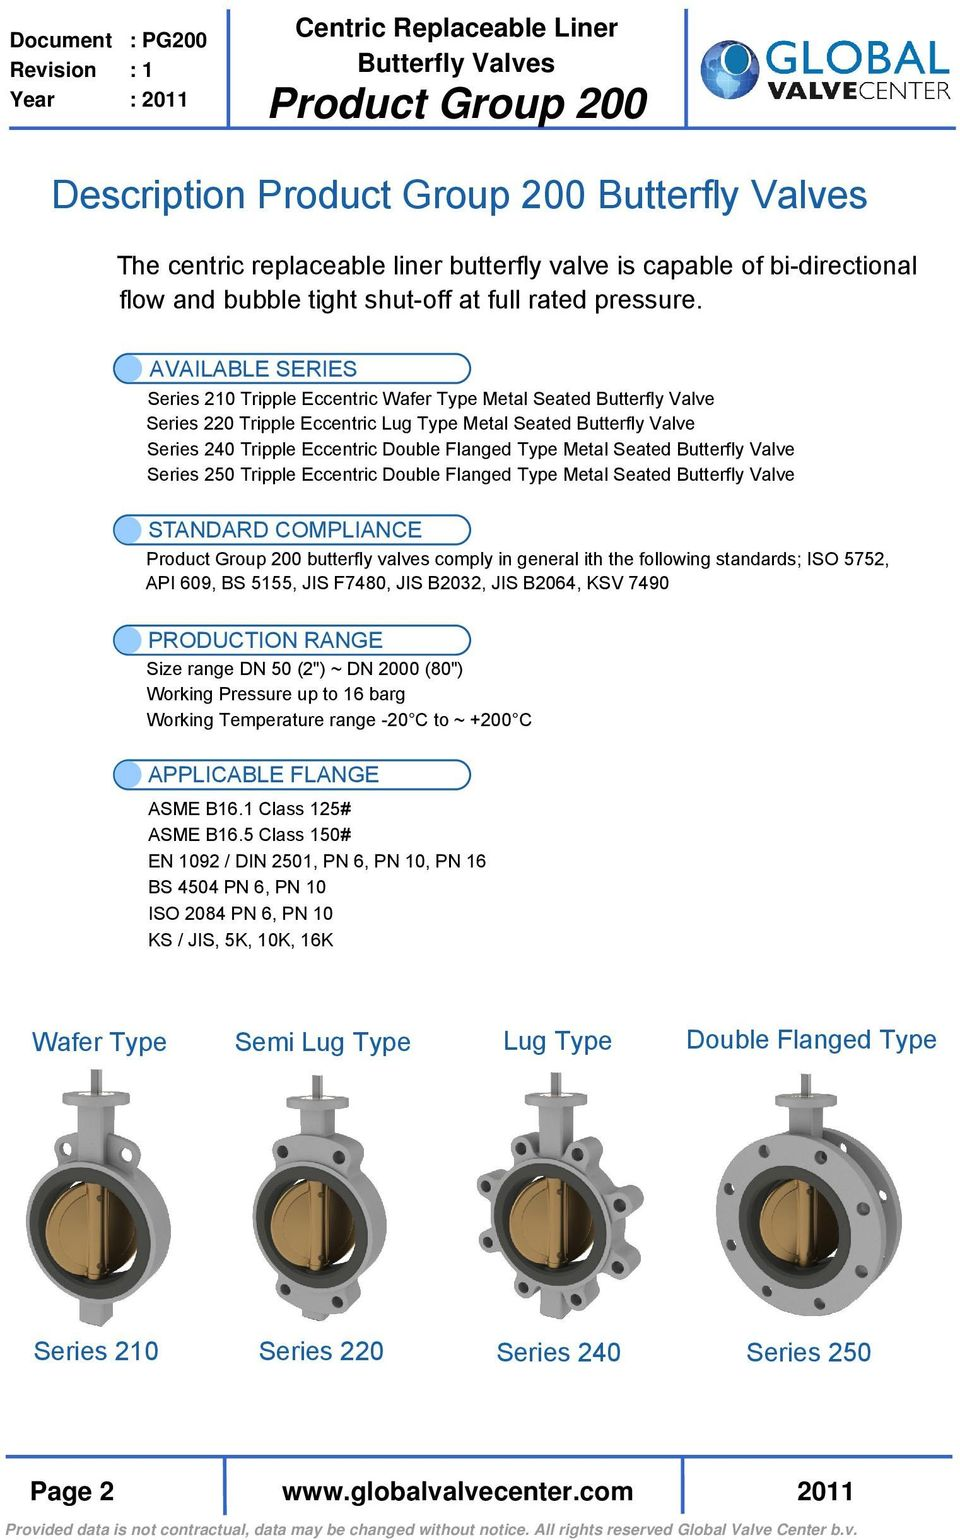 Type Metal Seated Butterfly Valve Series 250 Tripple Eccentric Double Flanged Type Metal Seated Butterfly Valve STANDARD COMPLIANCE butterfly valves comply in general ith the following standards; ISO